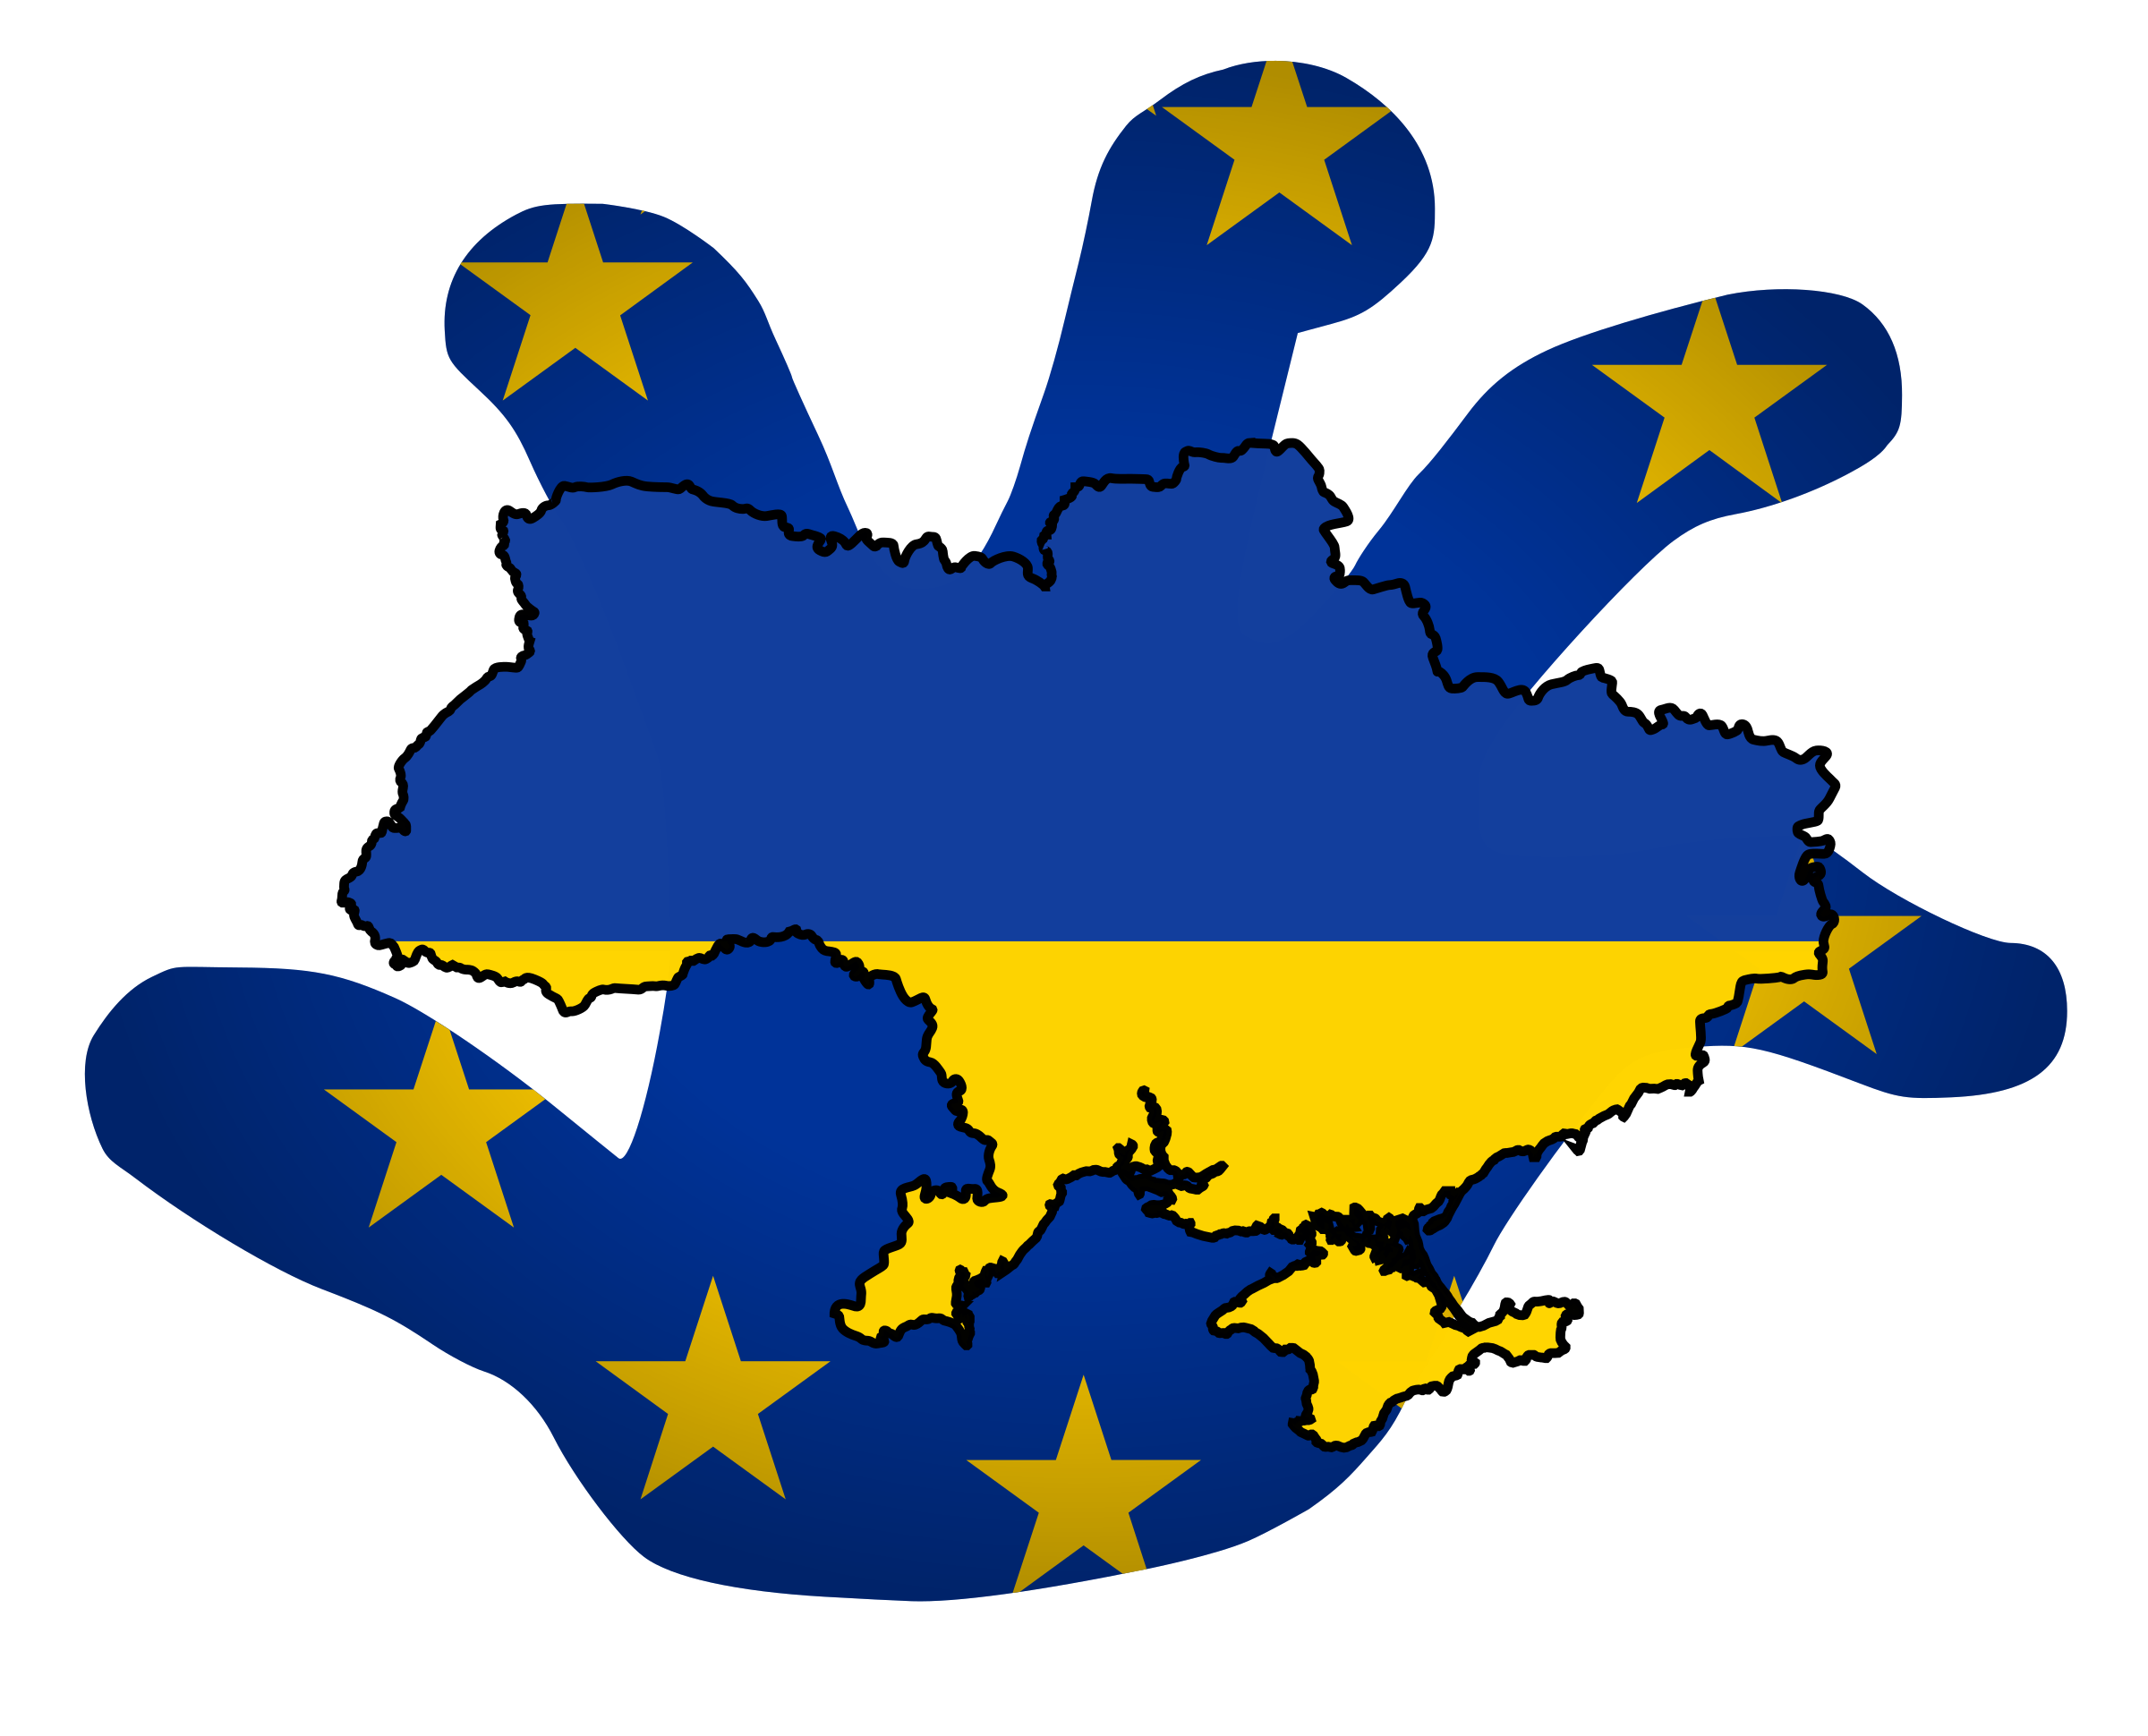 EU Ukraine by worker